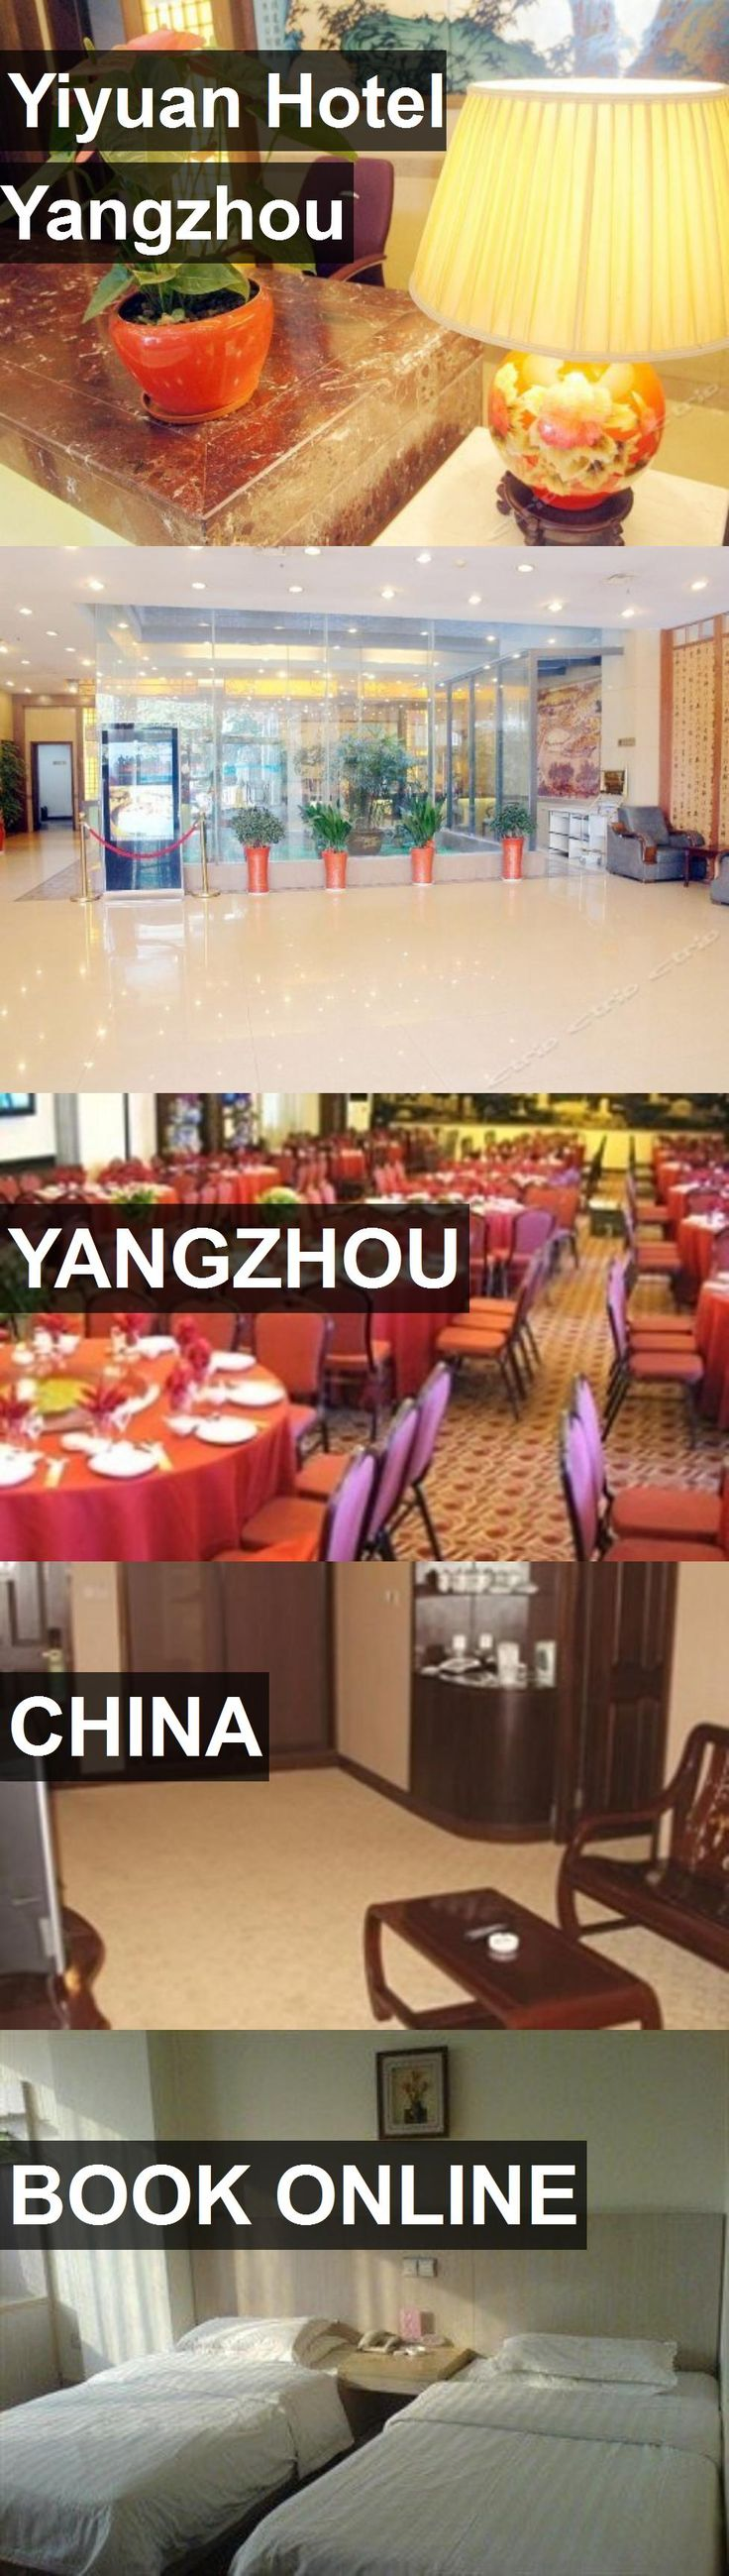 Yiyuan Hotel Yangzhou in Yangzhou, China. For more information, photos, reviews and best prices please follow the link. #China #Yangzhou #travel #vacation #hotel